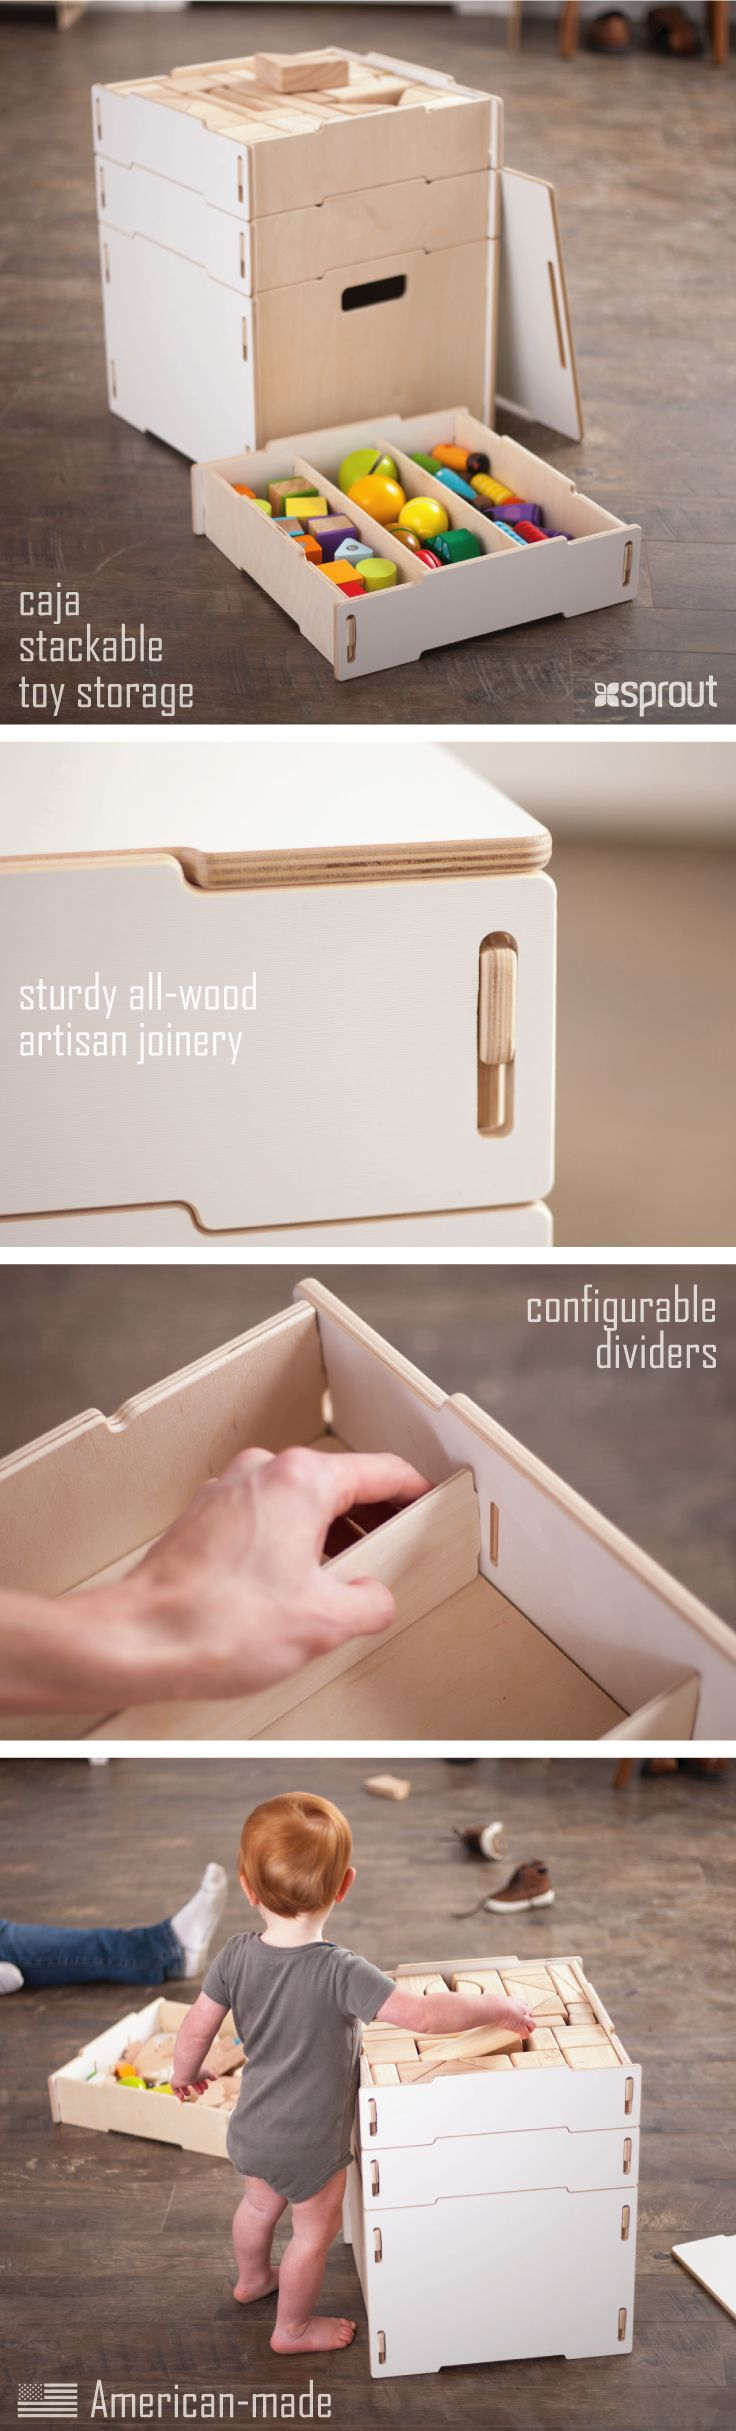 Organize to your heart's content with this stacking crate set. Kids toys, books, blankets, and other tangibles find a fun classy home in these wooden storage boxes. Learn more about the art and craft storage boxes at Sprout.